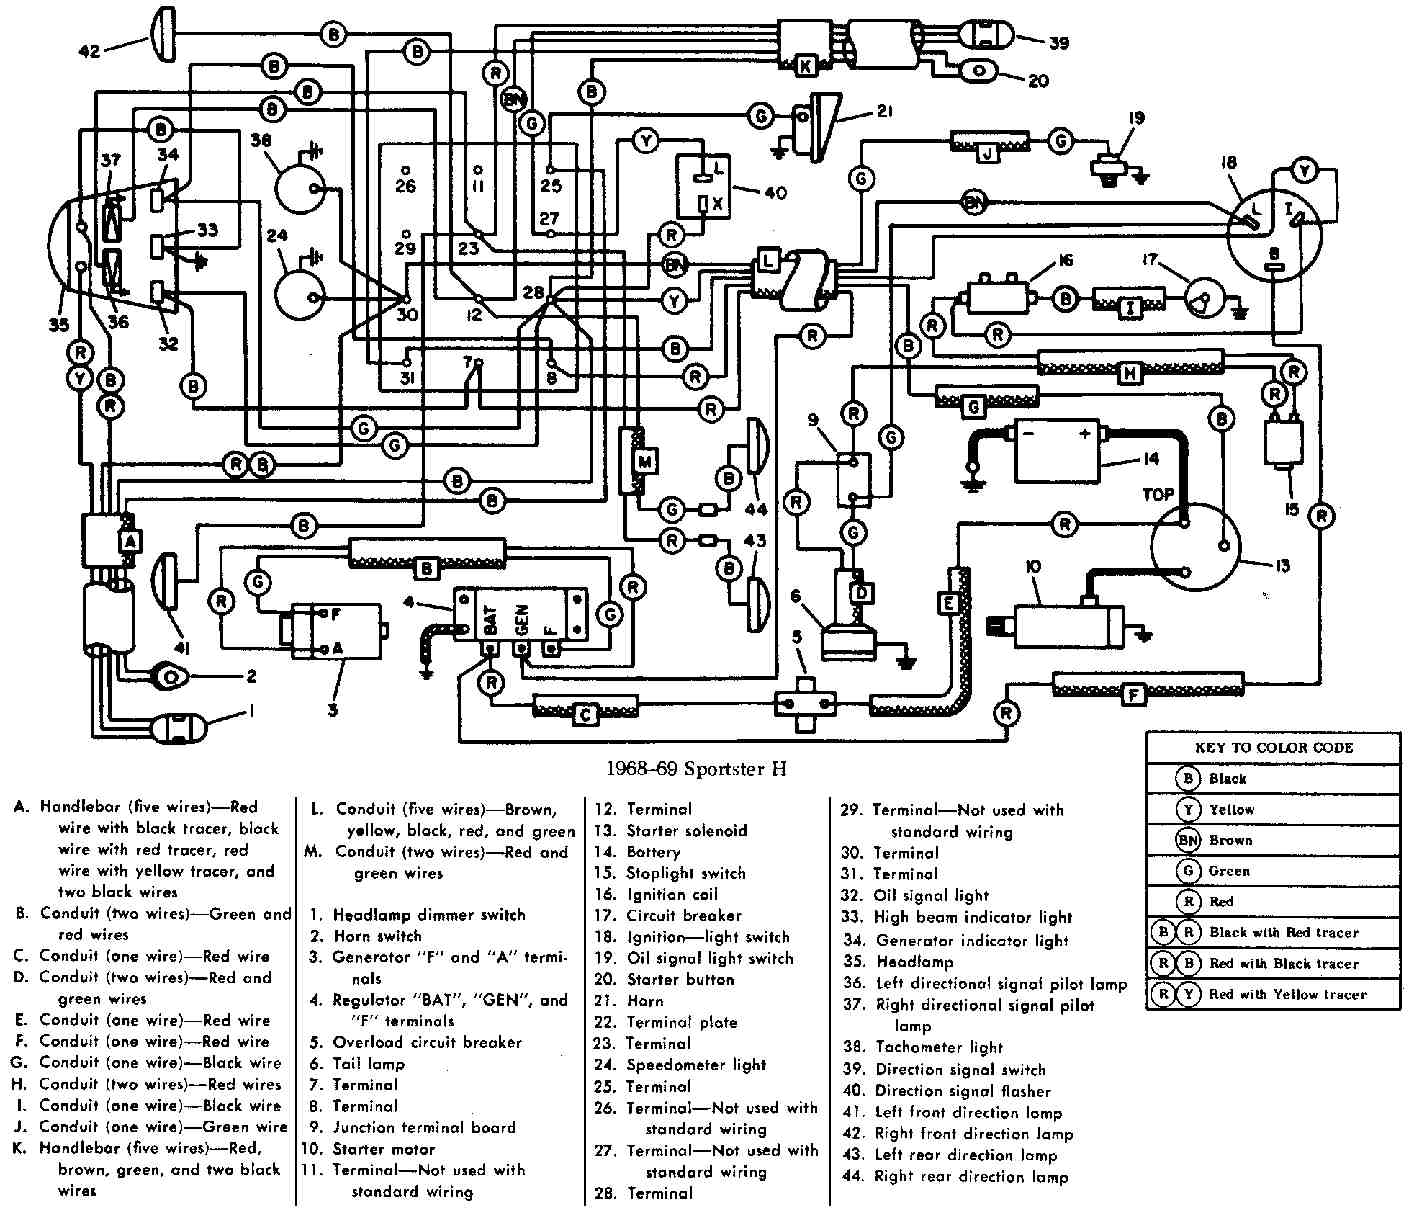 harley wiring diagram 1998 wiring diagram todays residential wiring diagrams 1996 flhr wiring diagram [ 1409 x 1218 Pixel ]